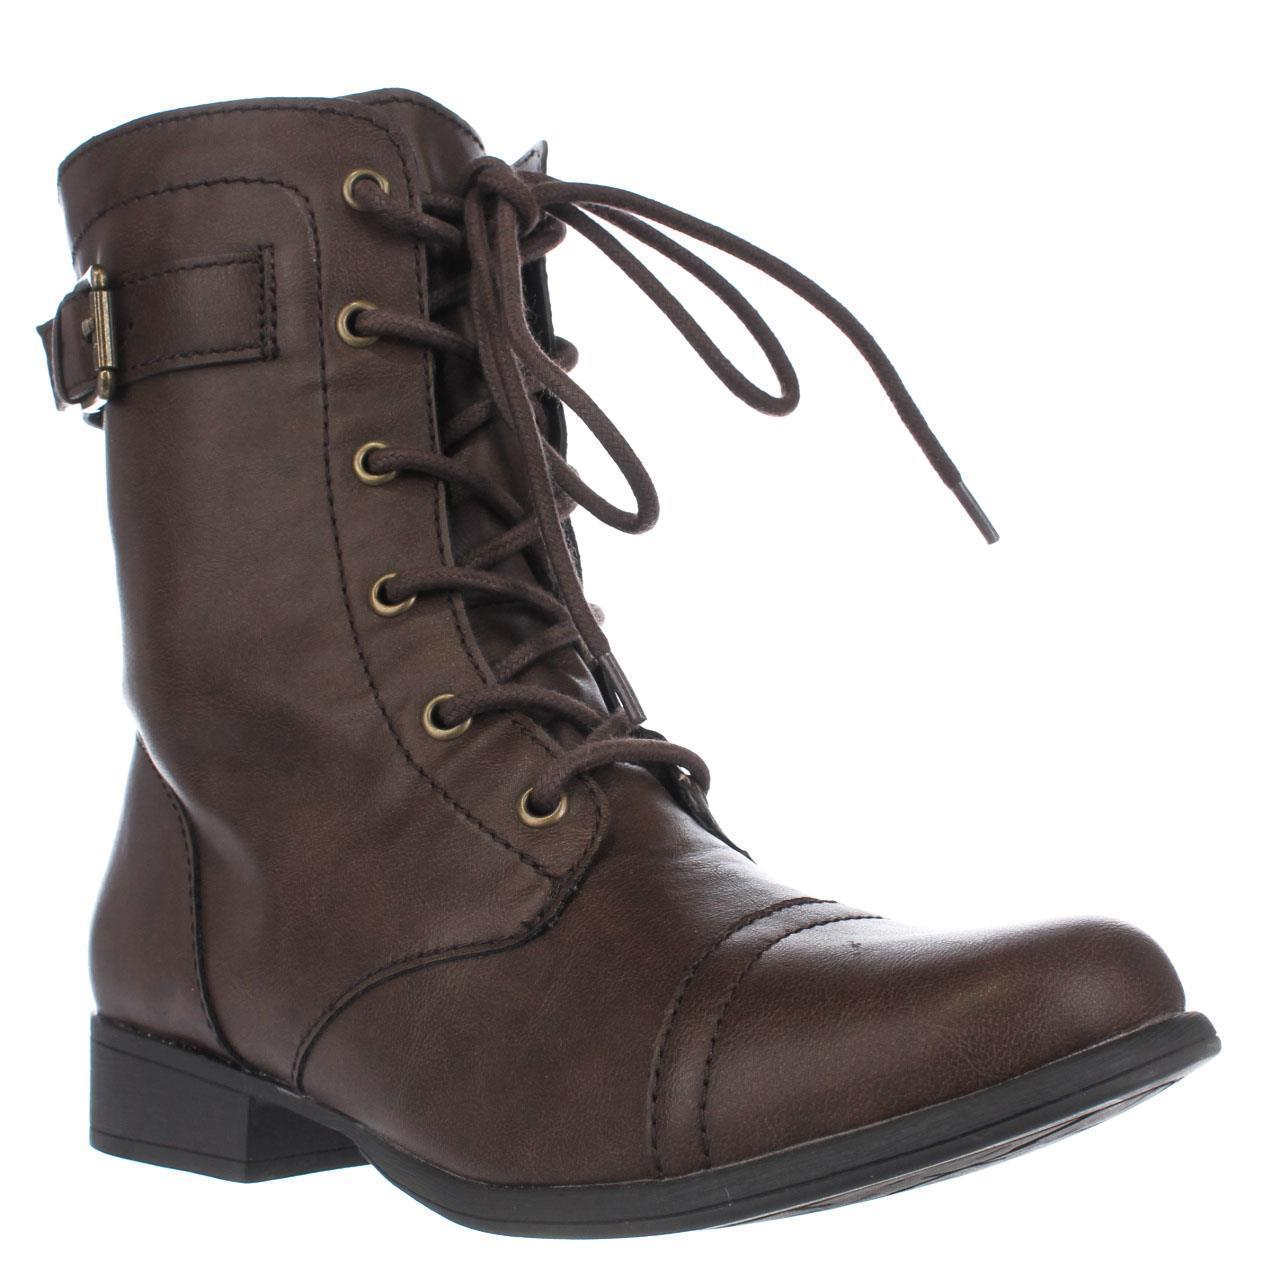 Womens AR35 Faylln Lace Up Combat Boots - Brown